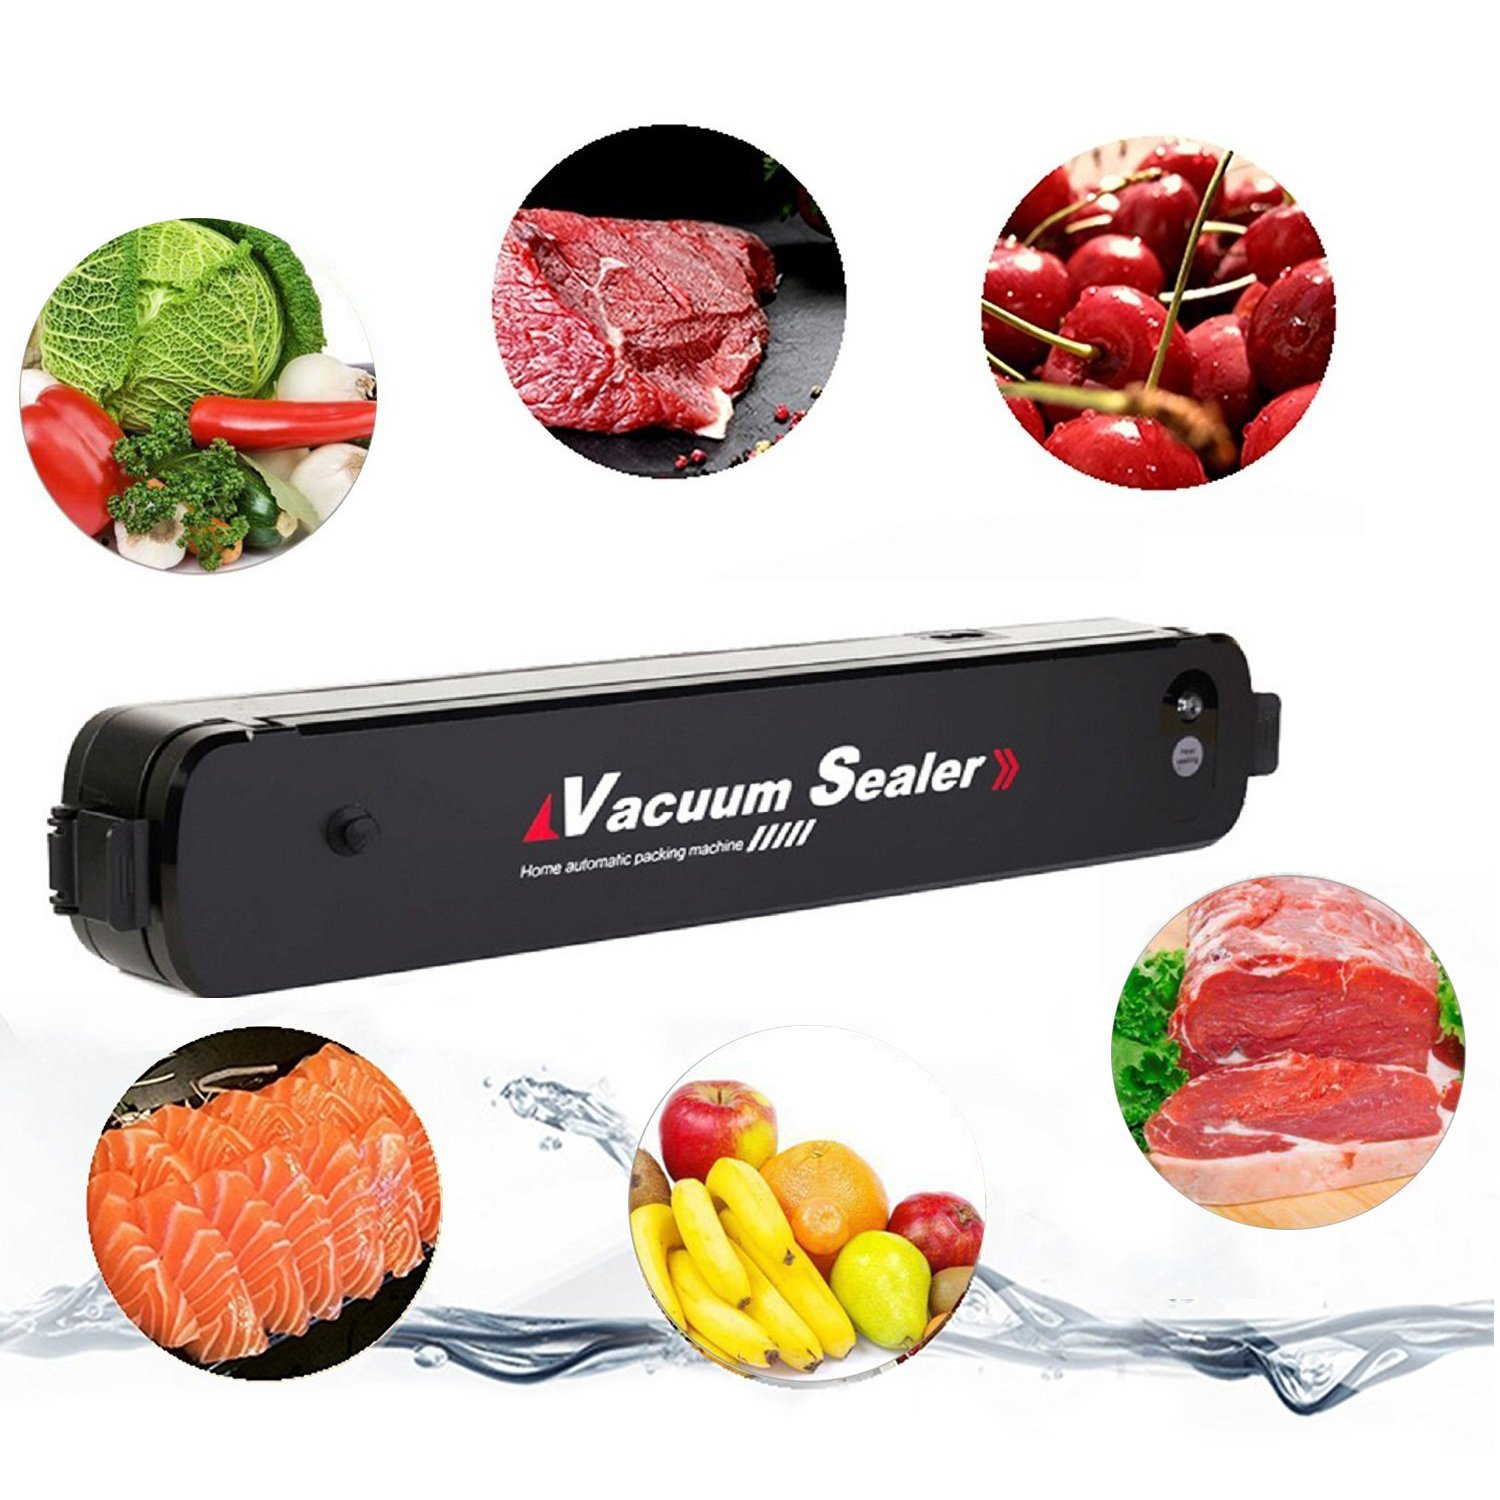 Vacuum Sealer Bamyko Portable Compact Vacuum Sealer Machine Automatic Vacuum Sealing System for Food Preservation and Storage + 15pcs Free Sealer Bags by Bamyko (Image #3)